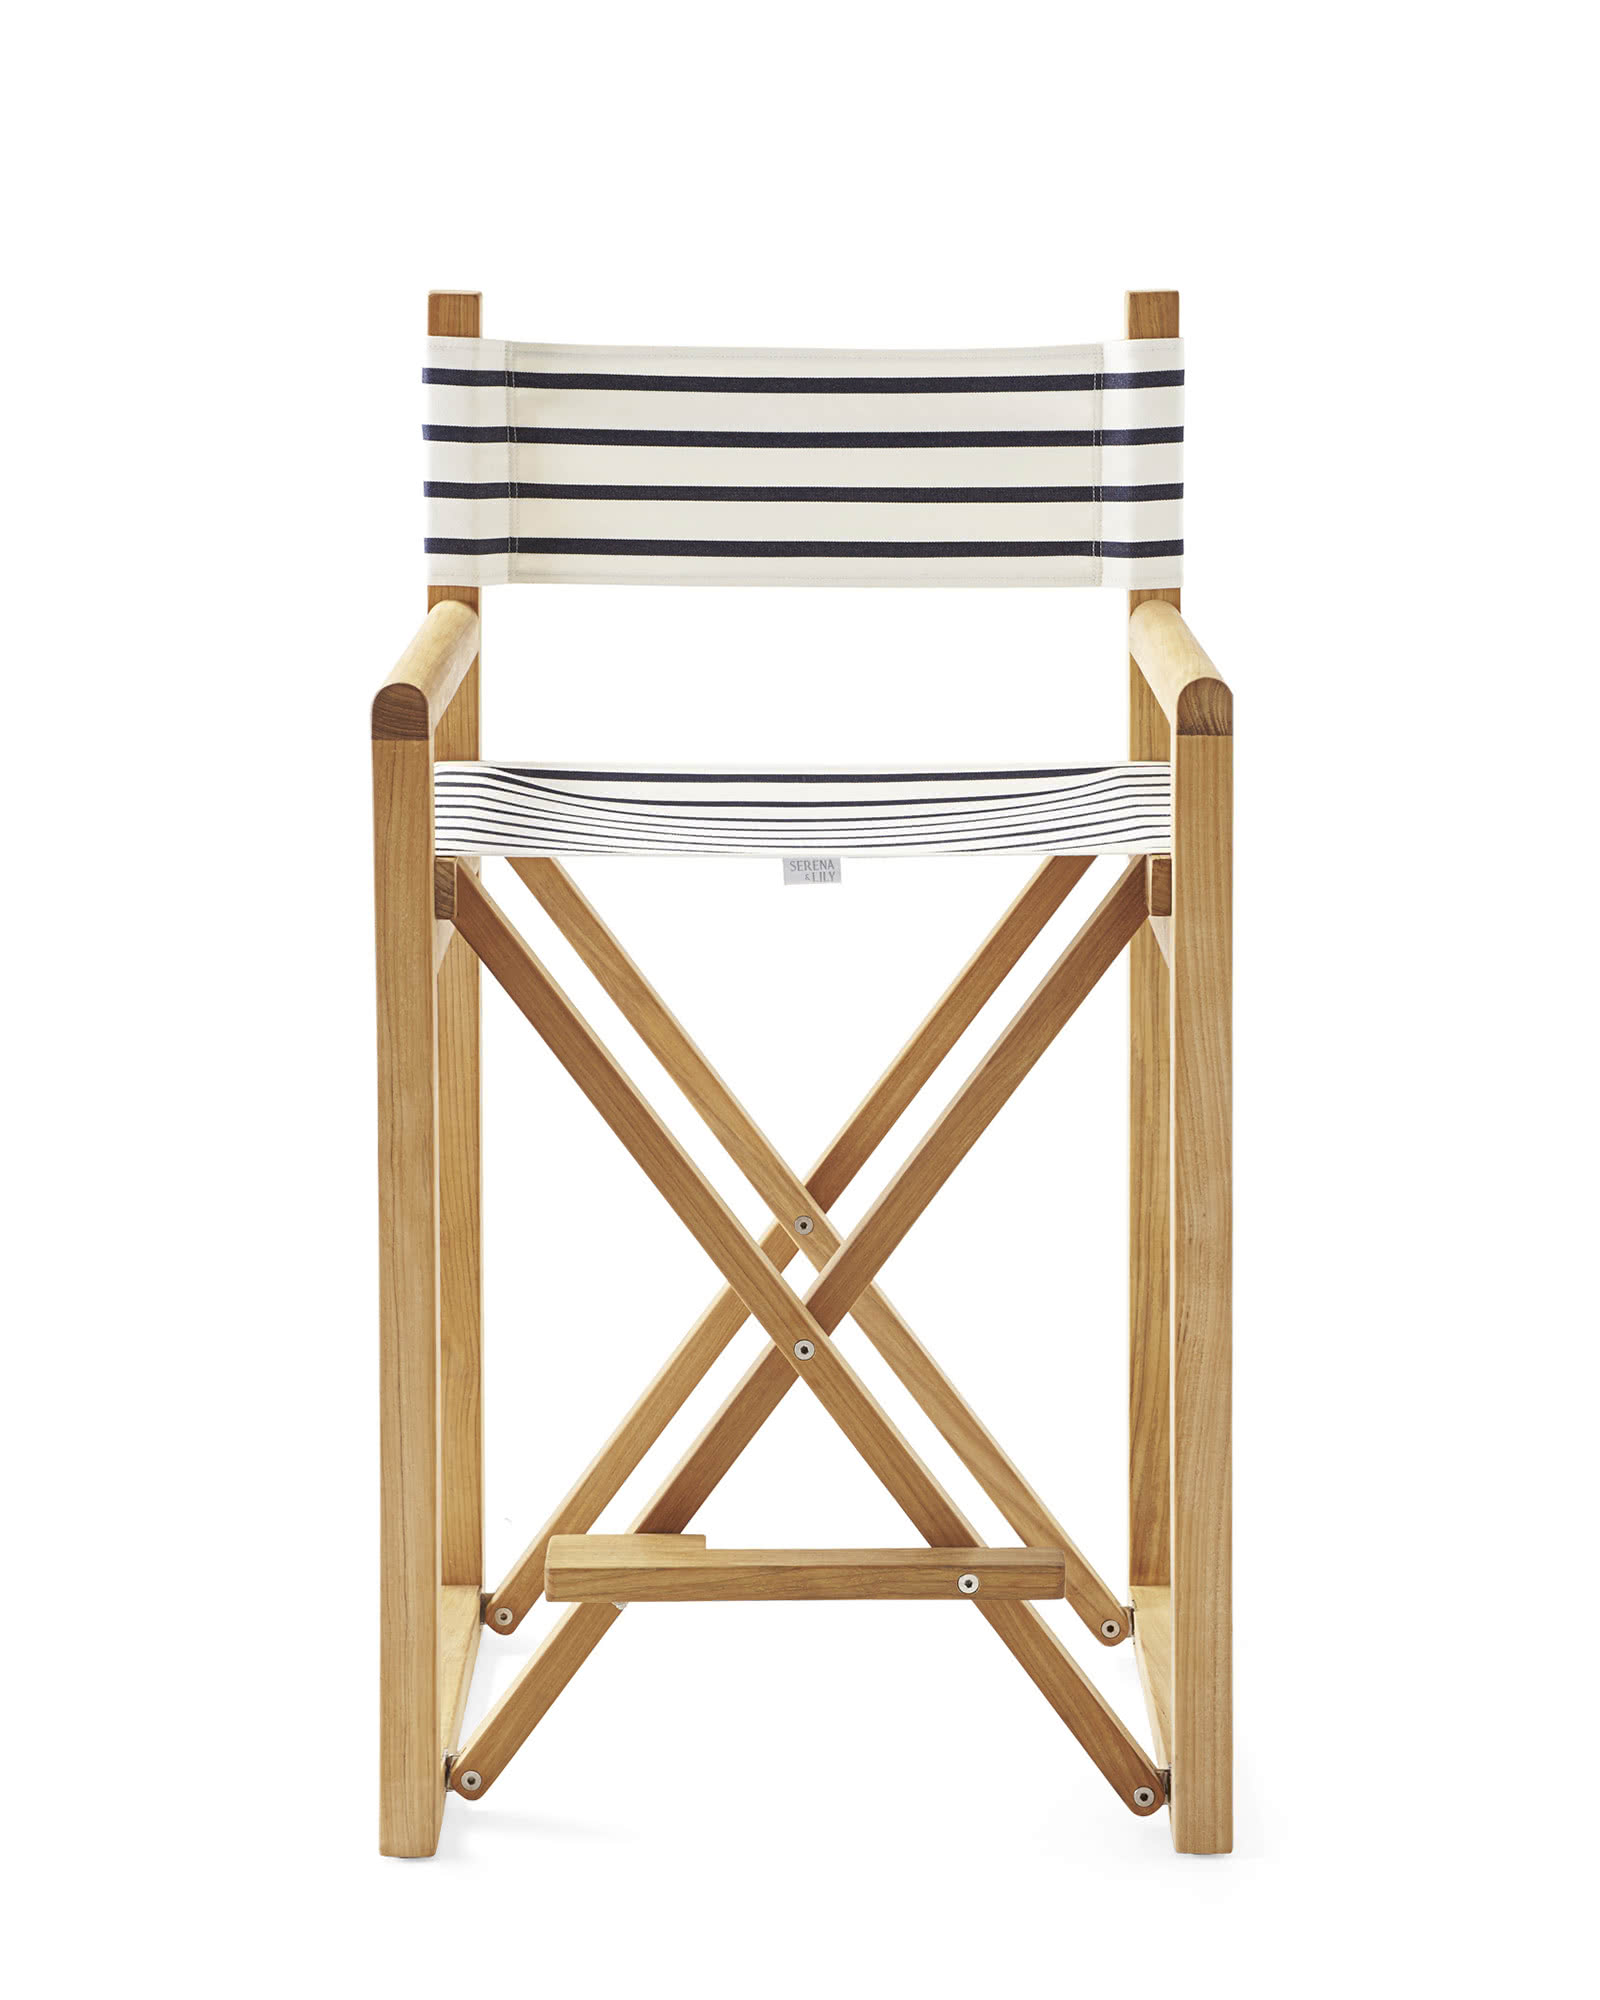 Directors Counter Stool Serena amp Lily